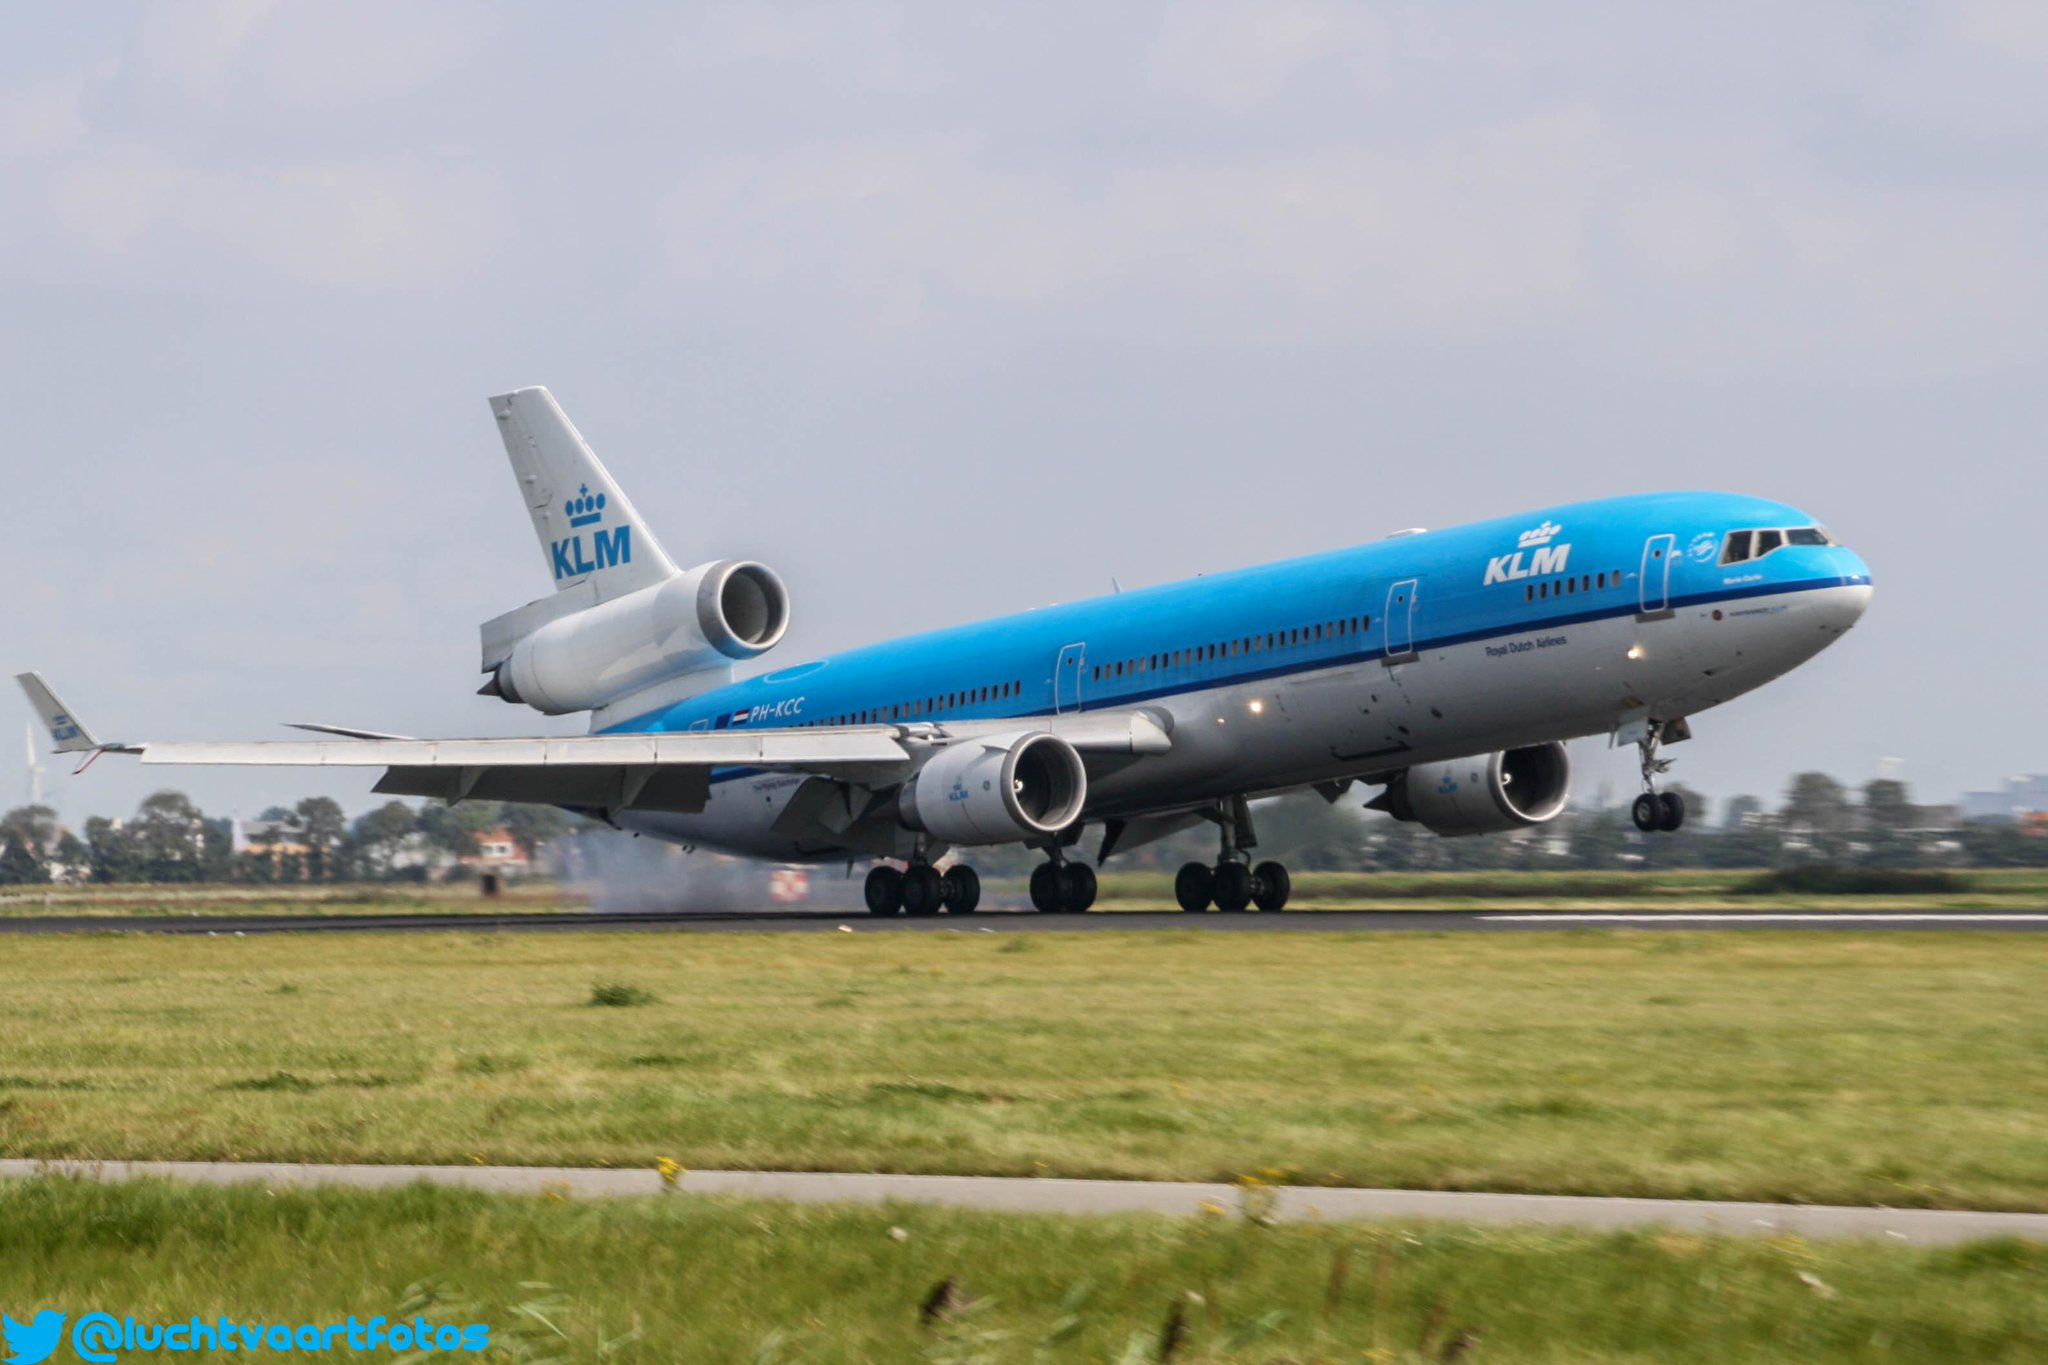 RT @luchtvaartfotos: KLM MD11 touchdown #avgeek #planespotter PH-KCC in better times when she still was together with all her sisters.... http://t.co/gznvEh4v9f